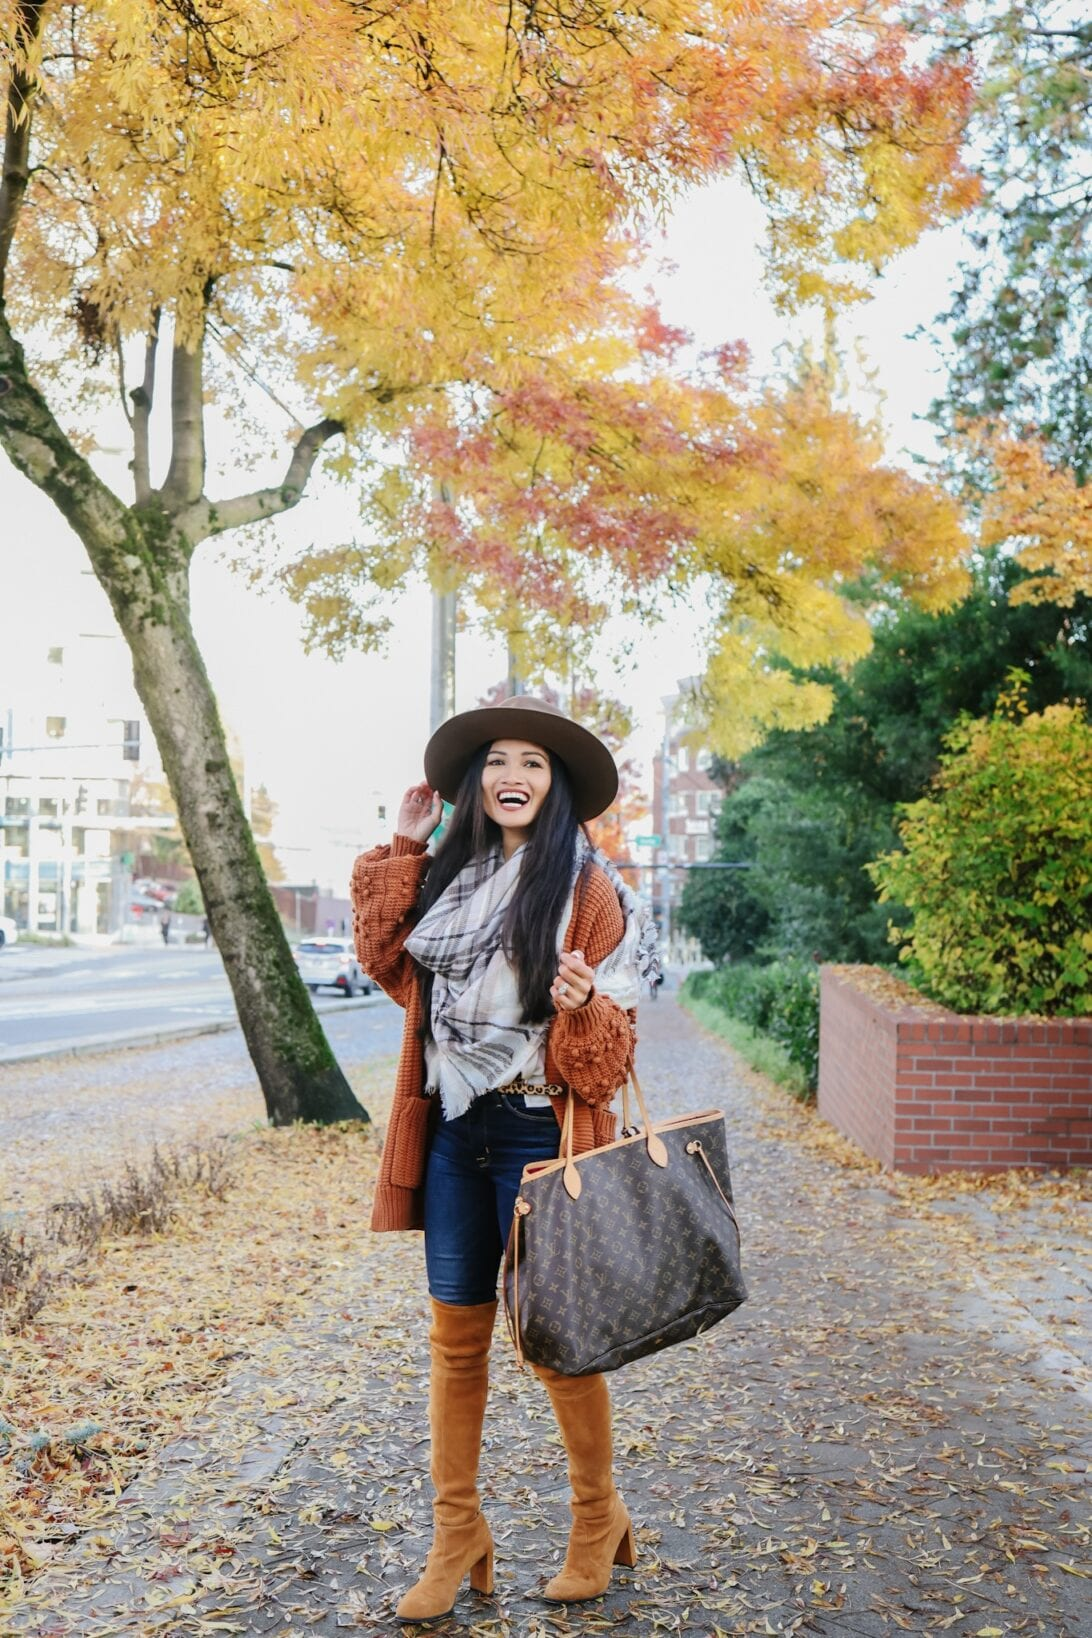 Louis Vuitton Neverfull, brown fedora, orange cardigan, Stuart Weitzman Hiline boots, over the knee boots, scarf , Seattle fall trees